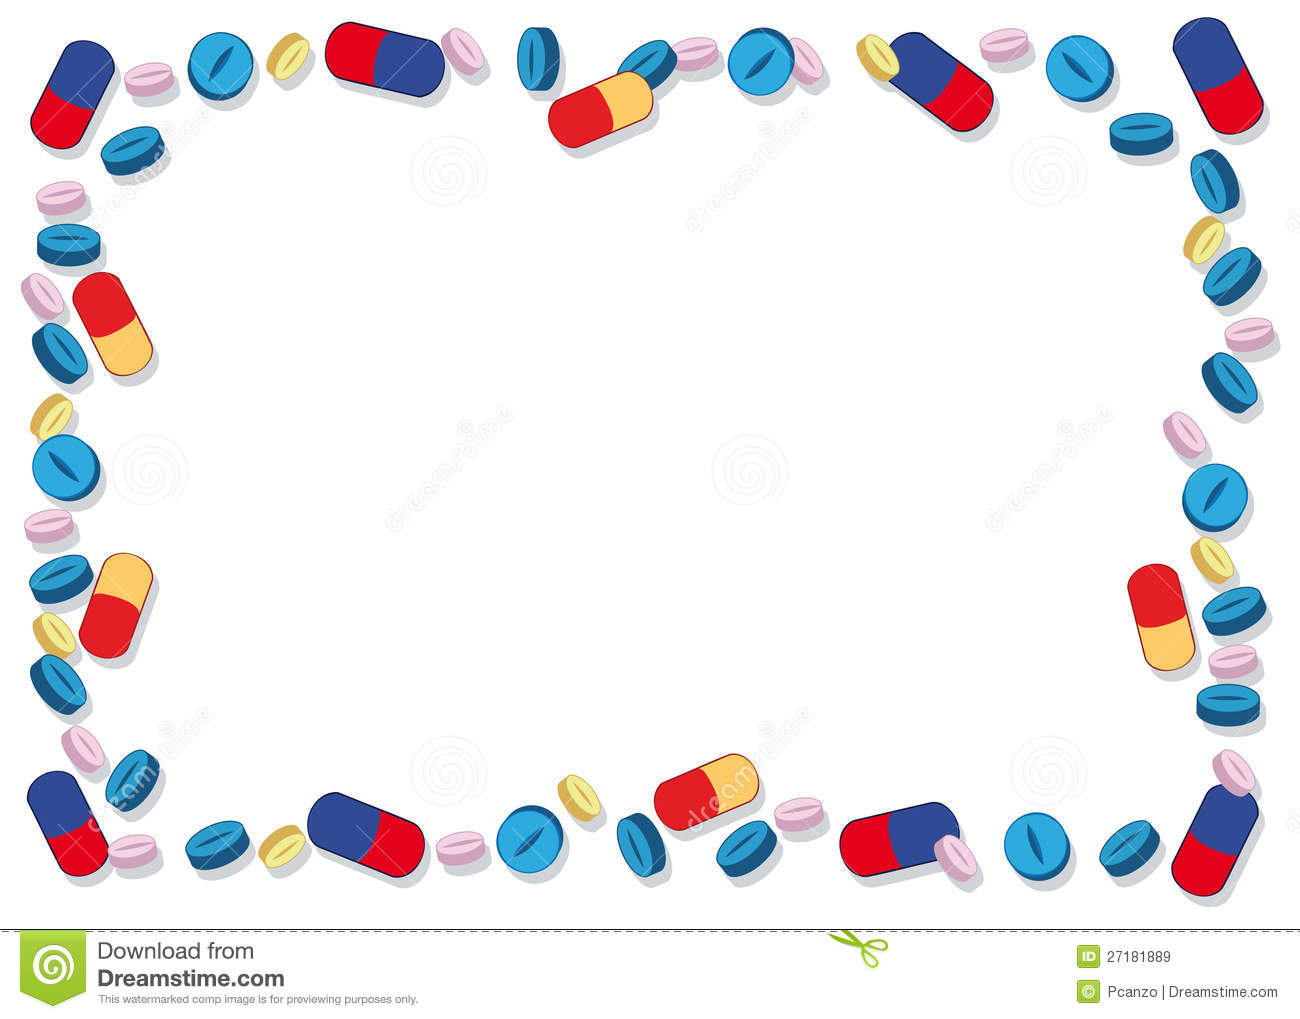 coloured pills frame royalty free stock images image free clip art images st patricks day free st patrick's day birthday clipart